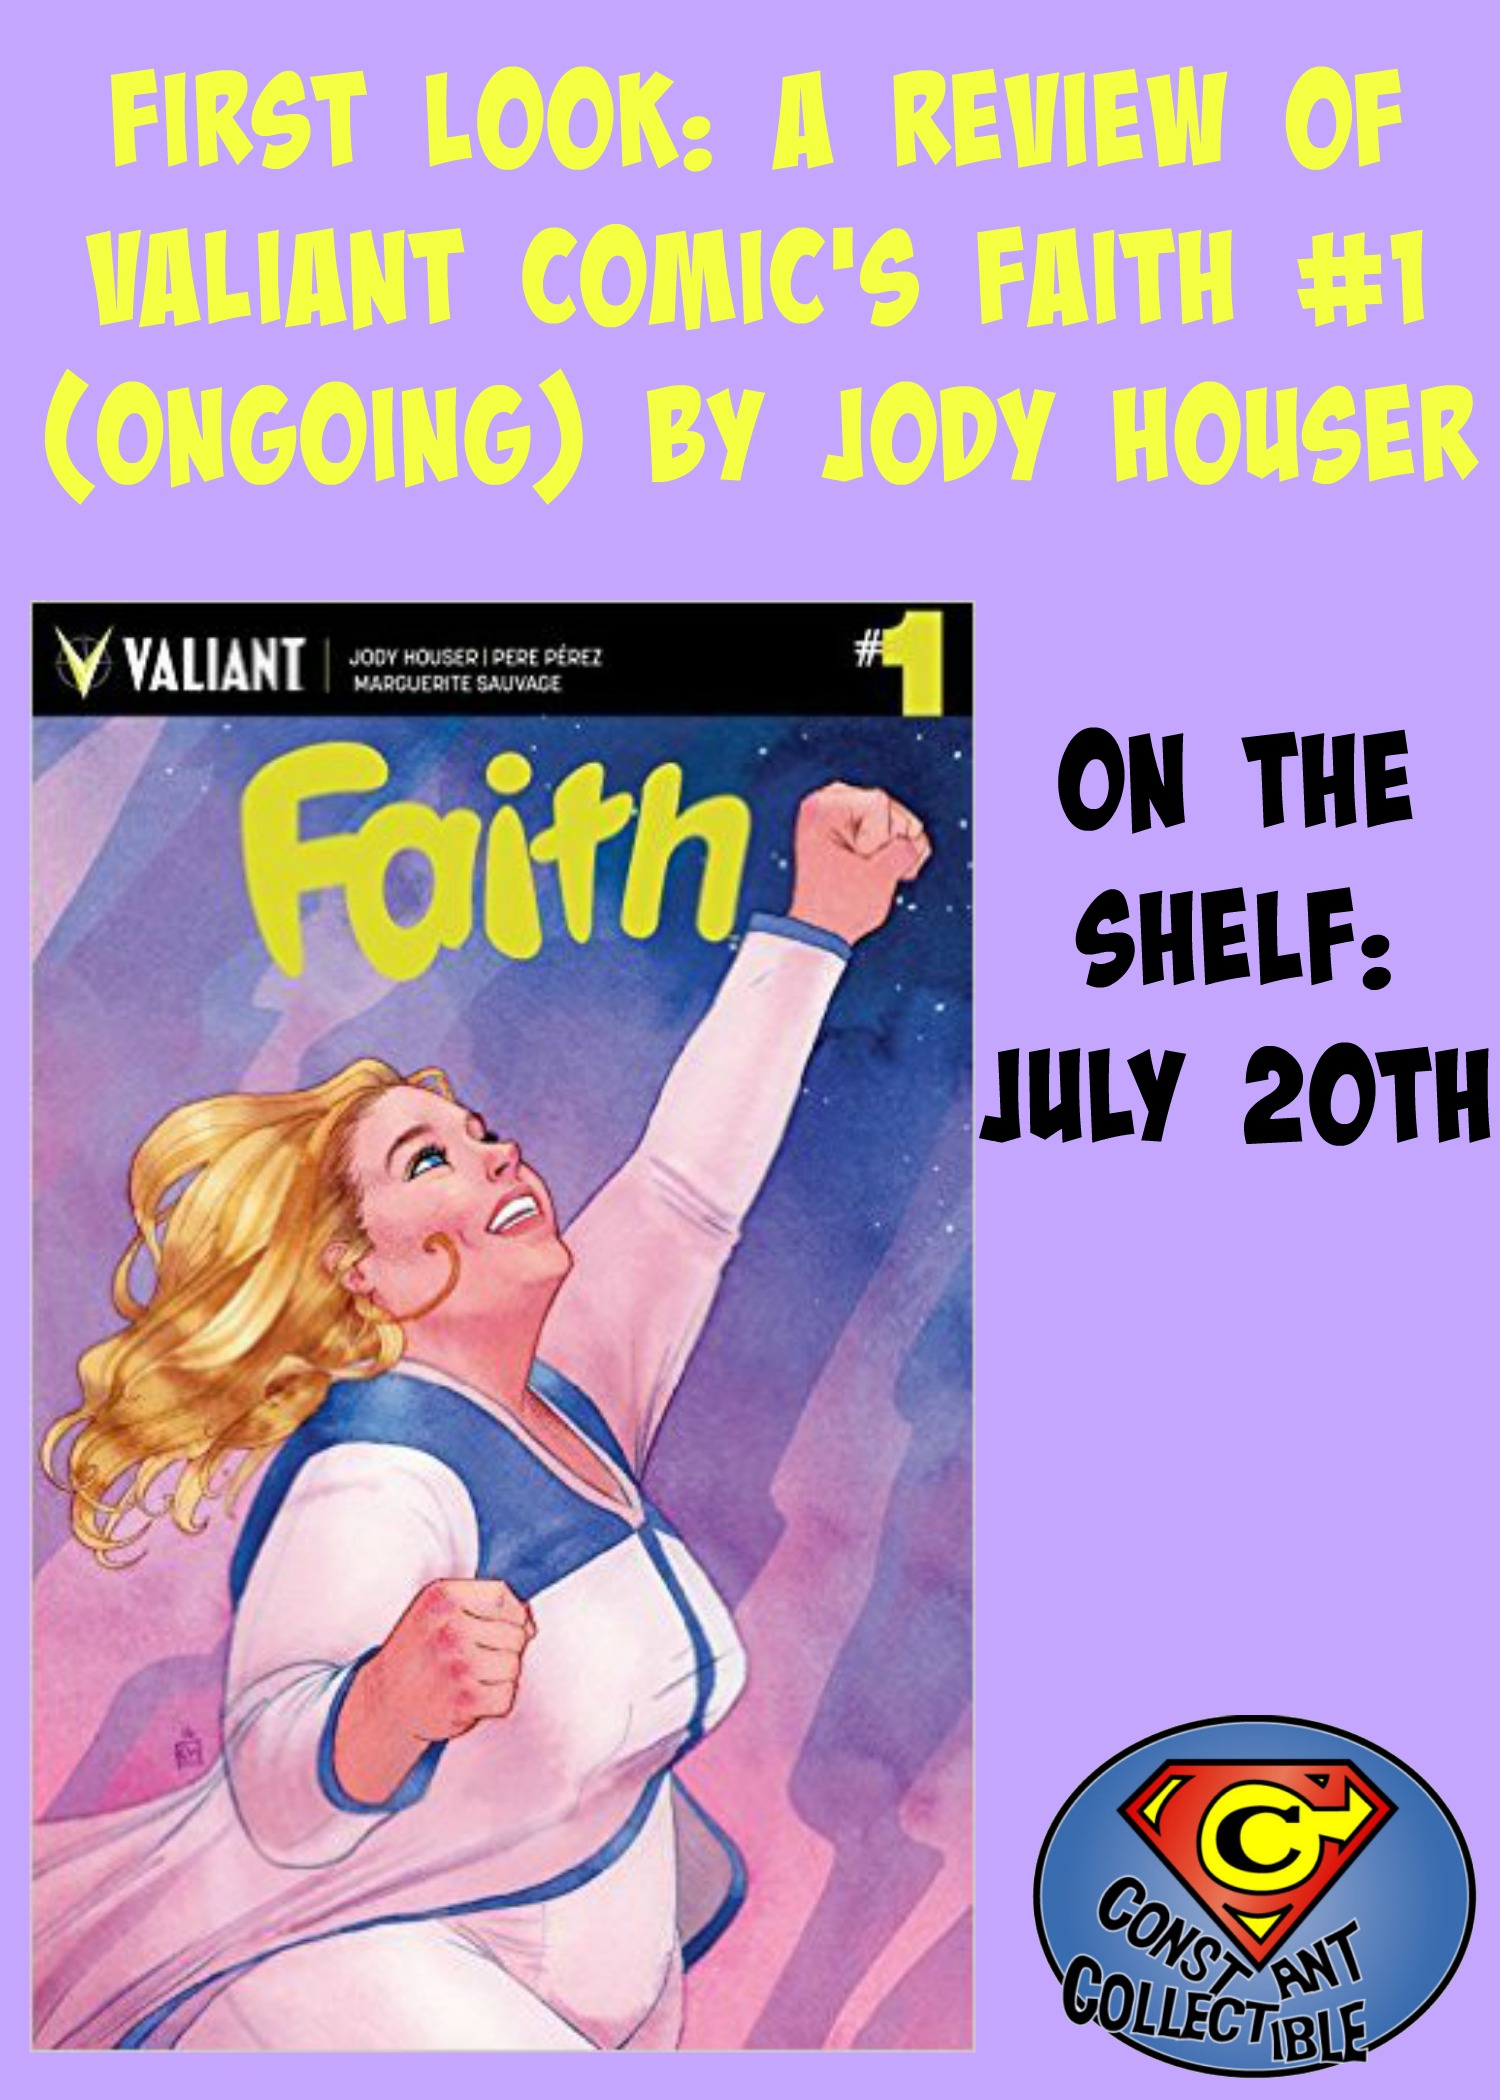 First Look: Review of Valiant Comic's Faith #1 (Ongoing) by Jody Houser